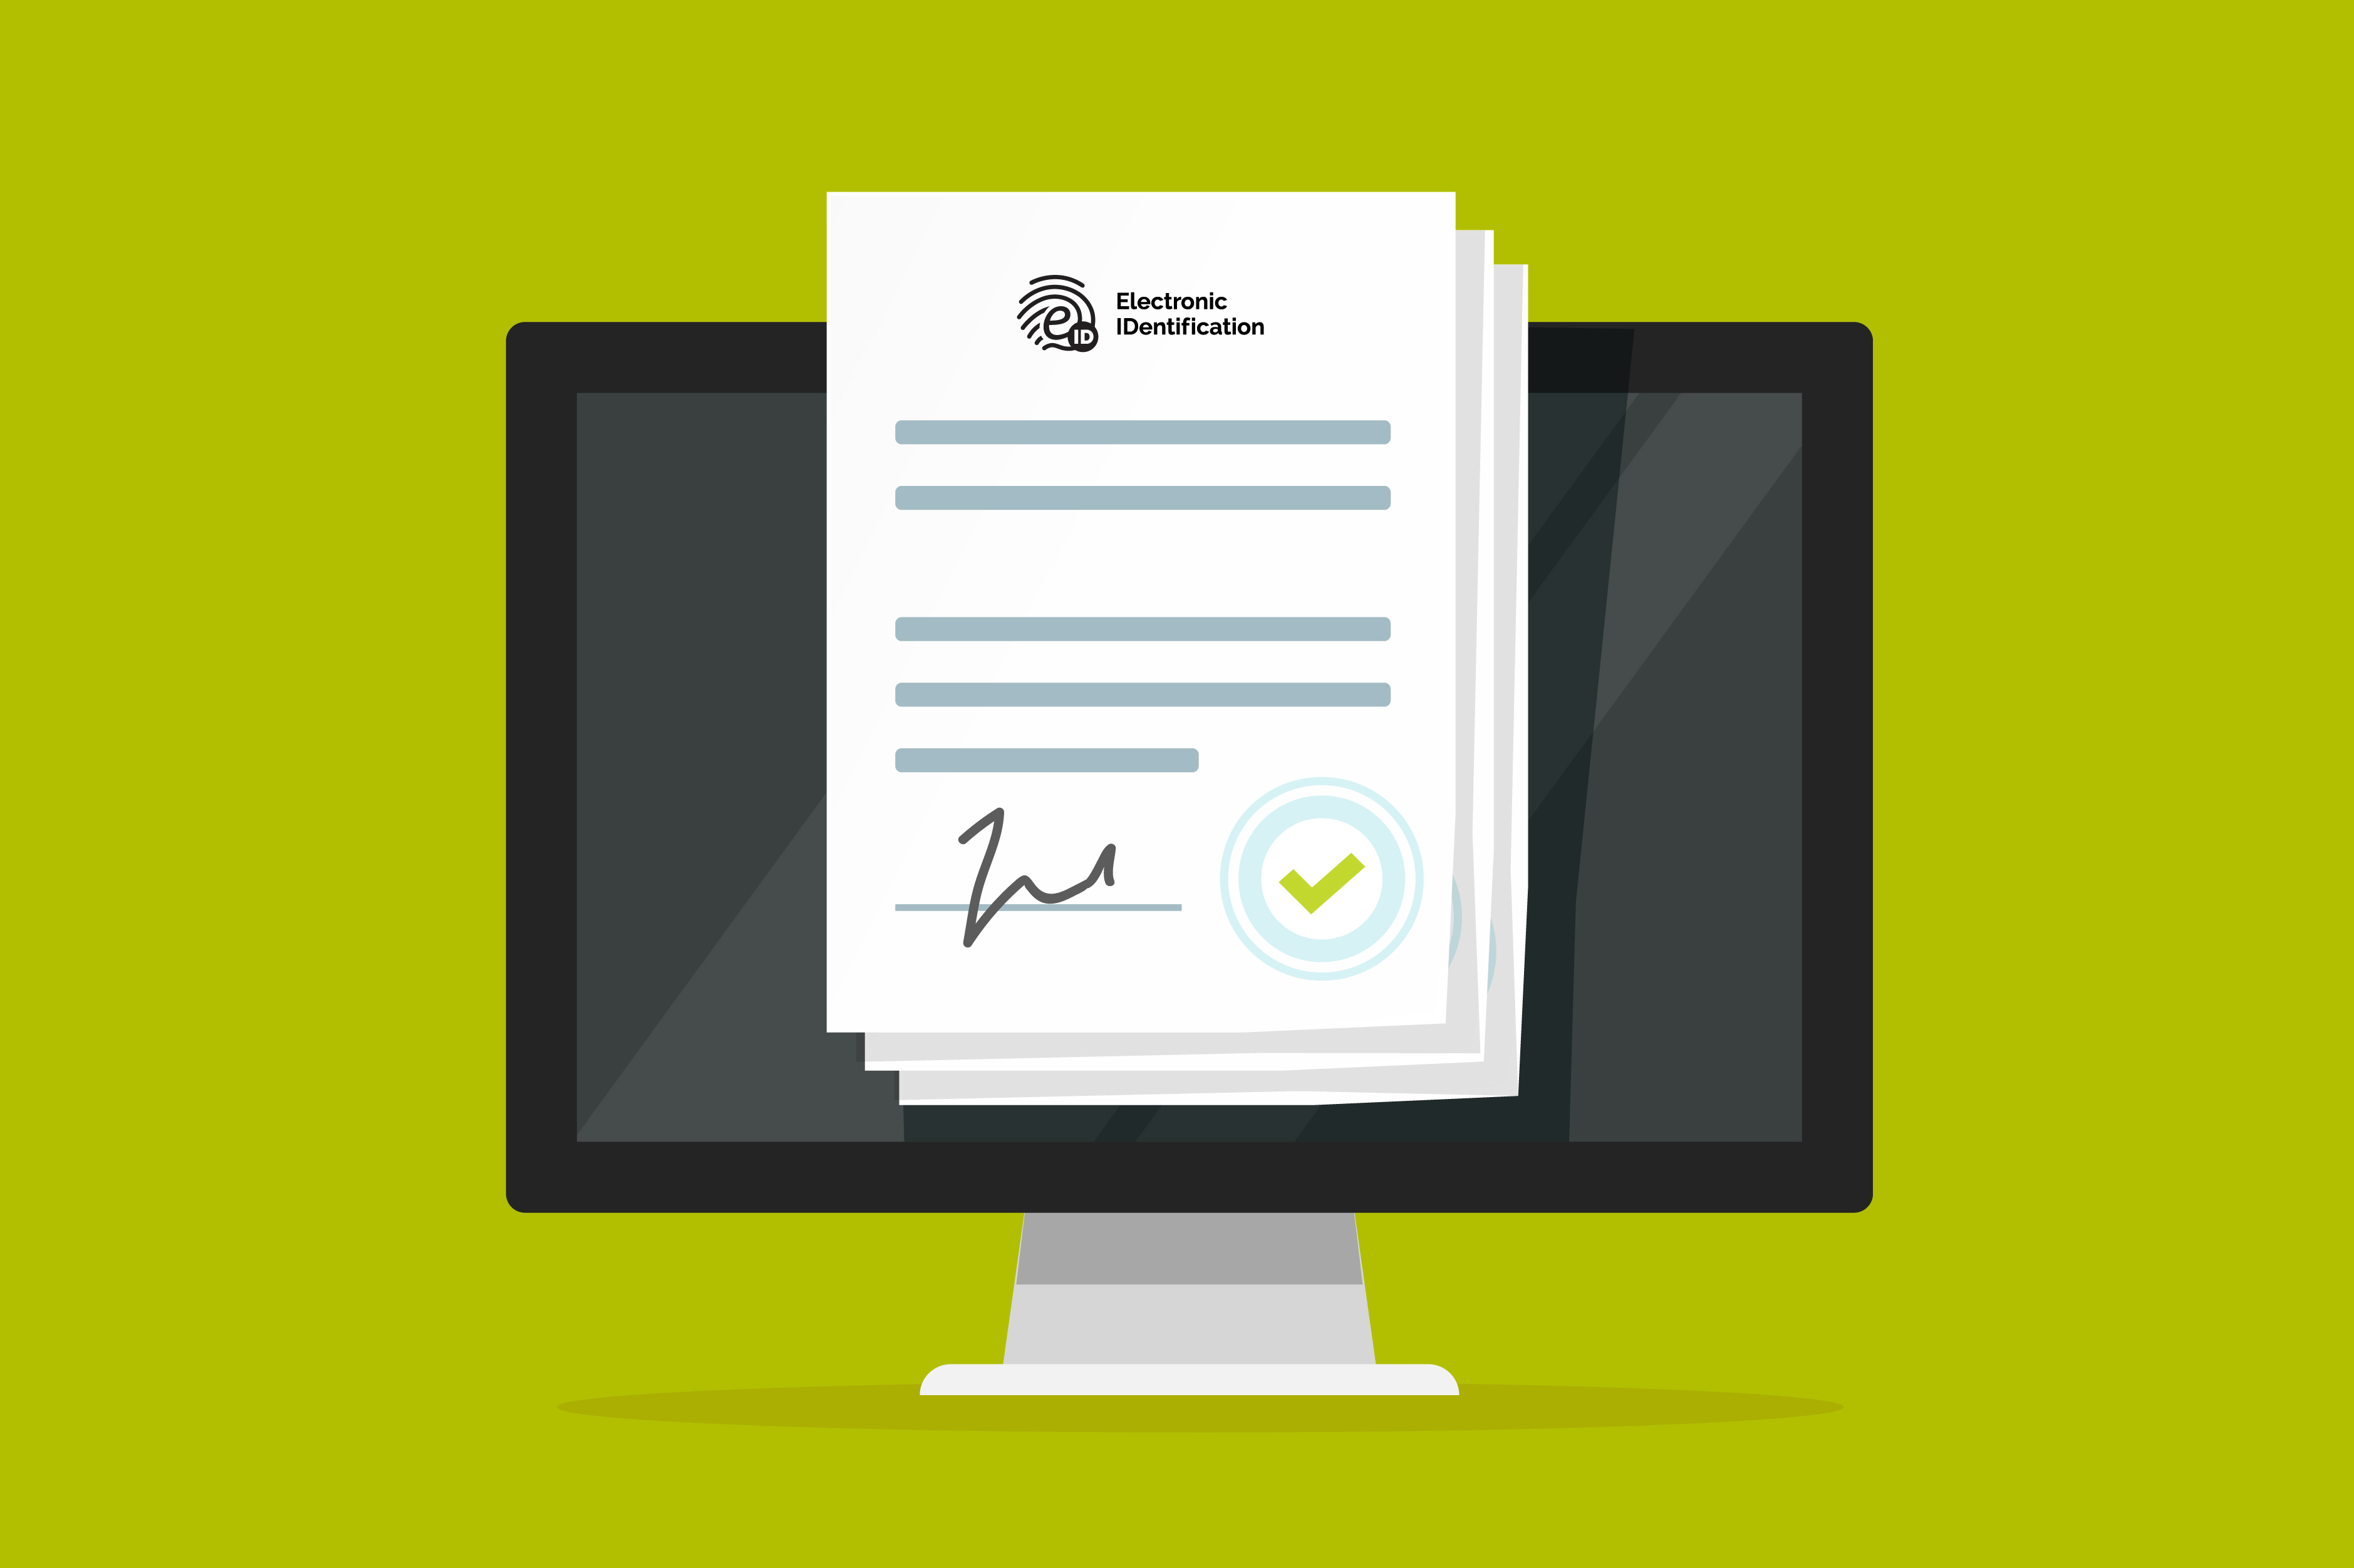 eIDAS: New Electronic Signature Regulation in Europe